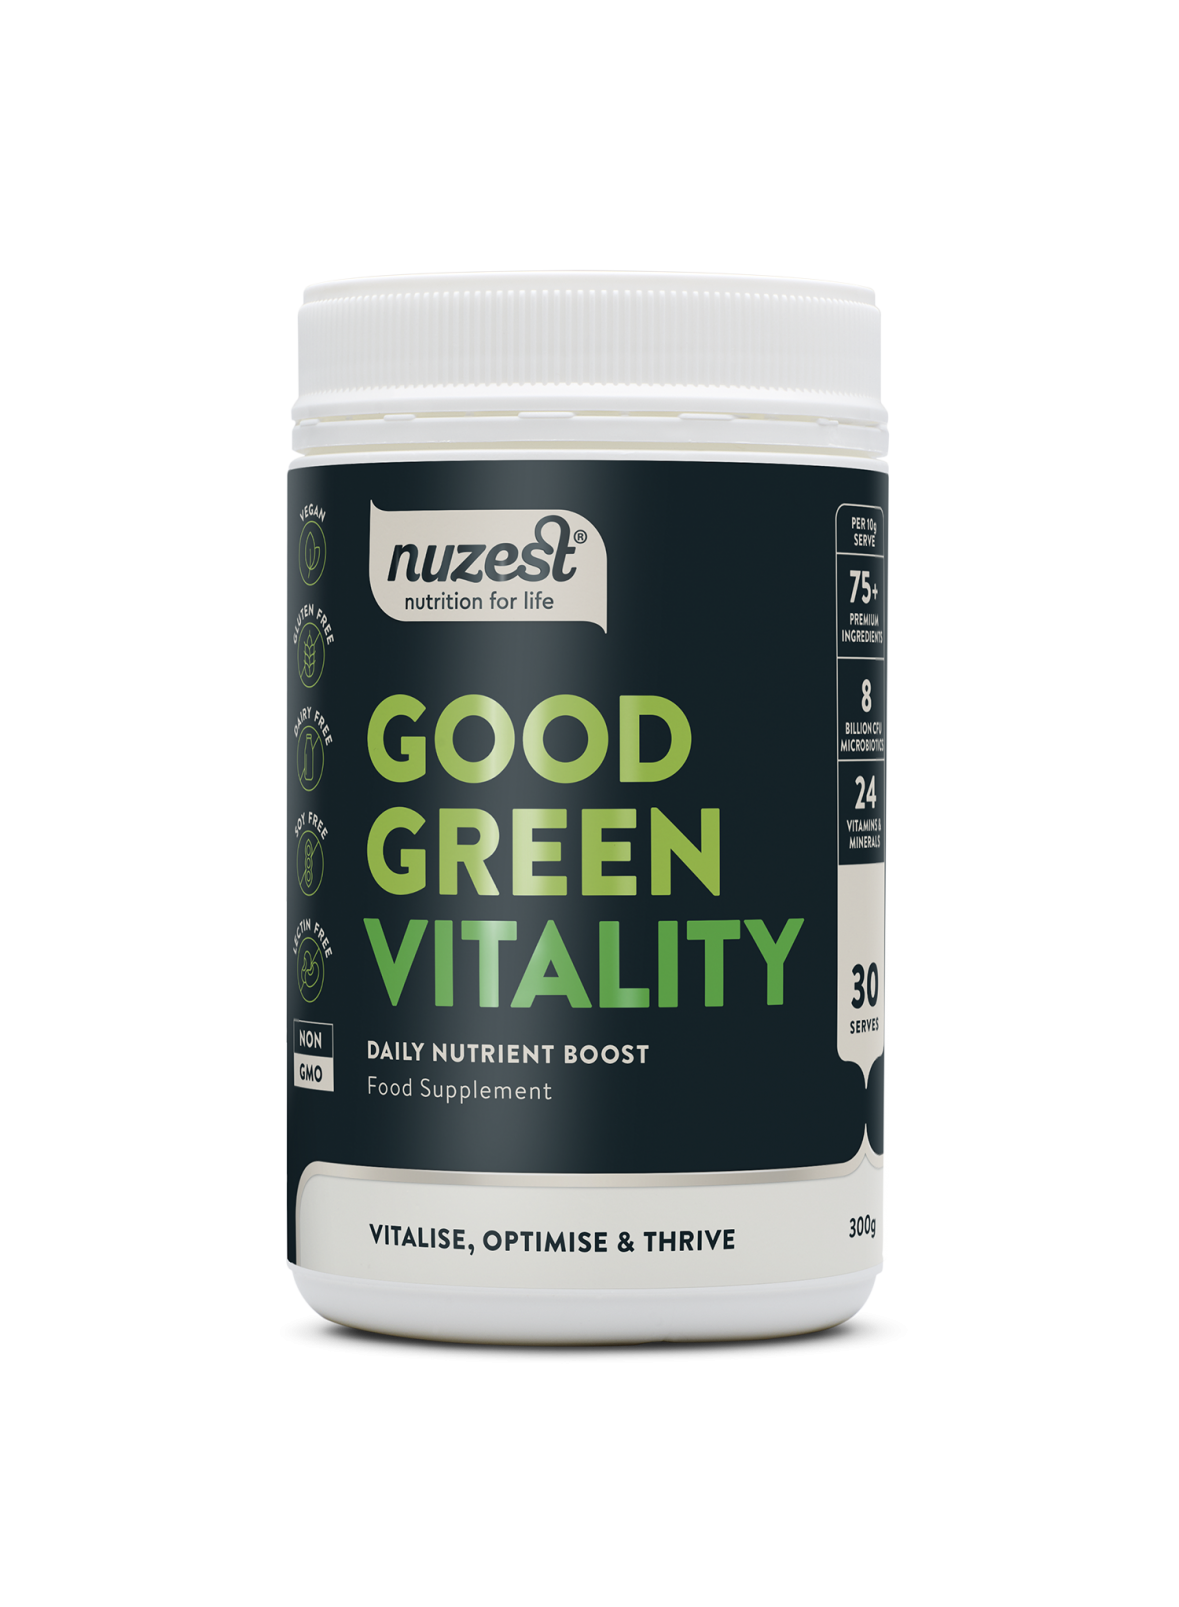 Good Green Vitality 300g (Currently Unavailable)